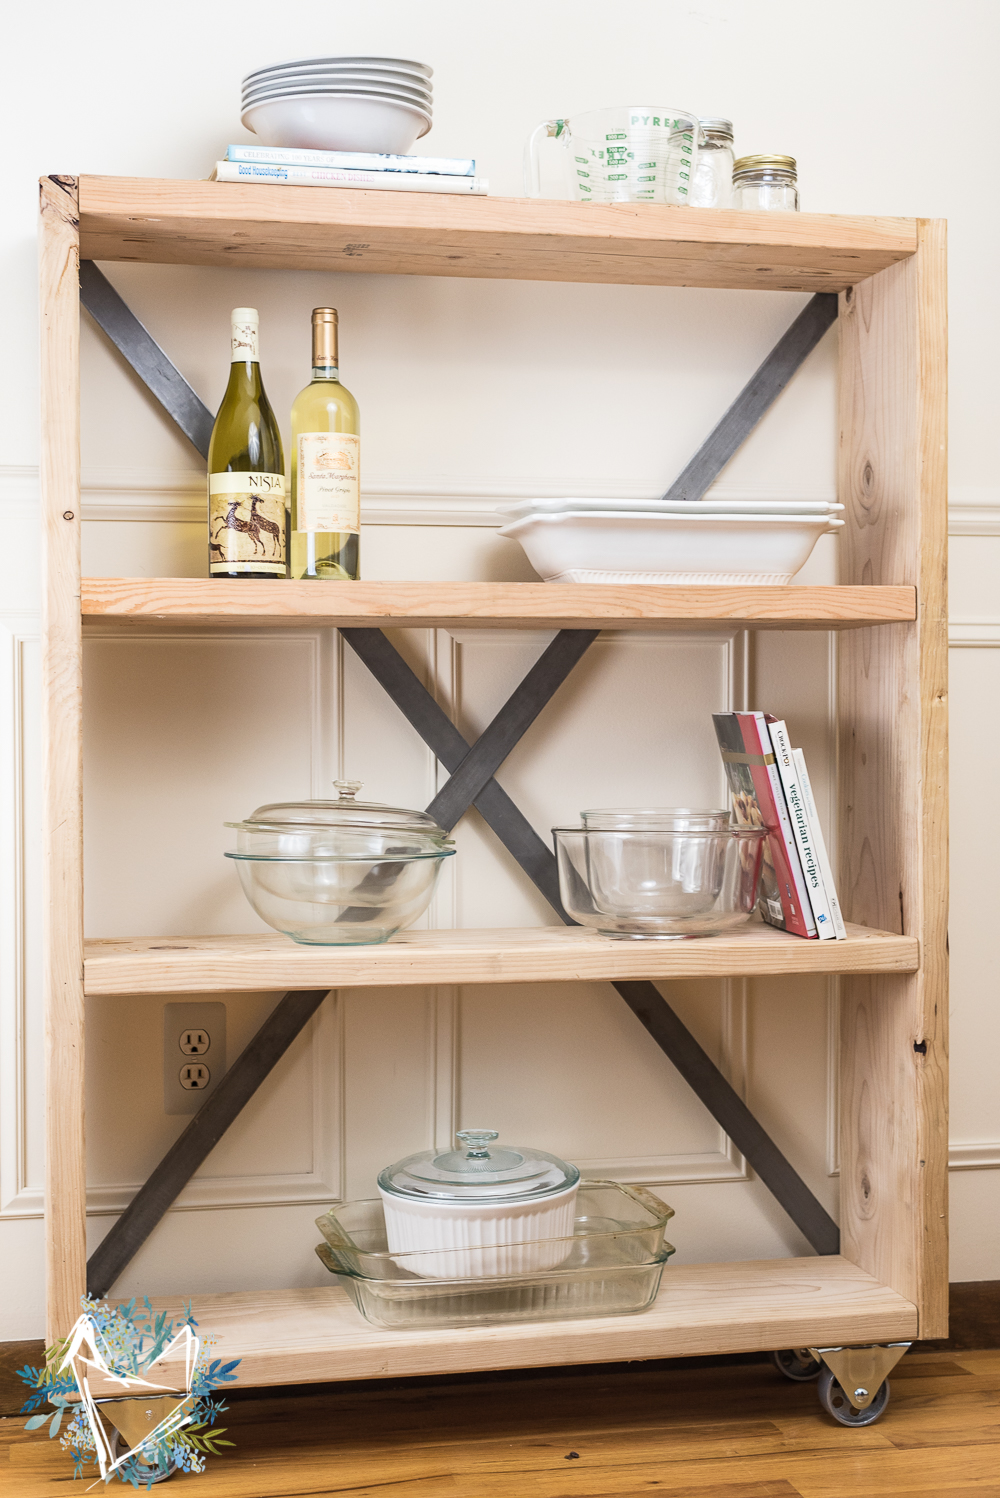 diy-industrial-famhouse-pantry-shelf-7